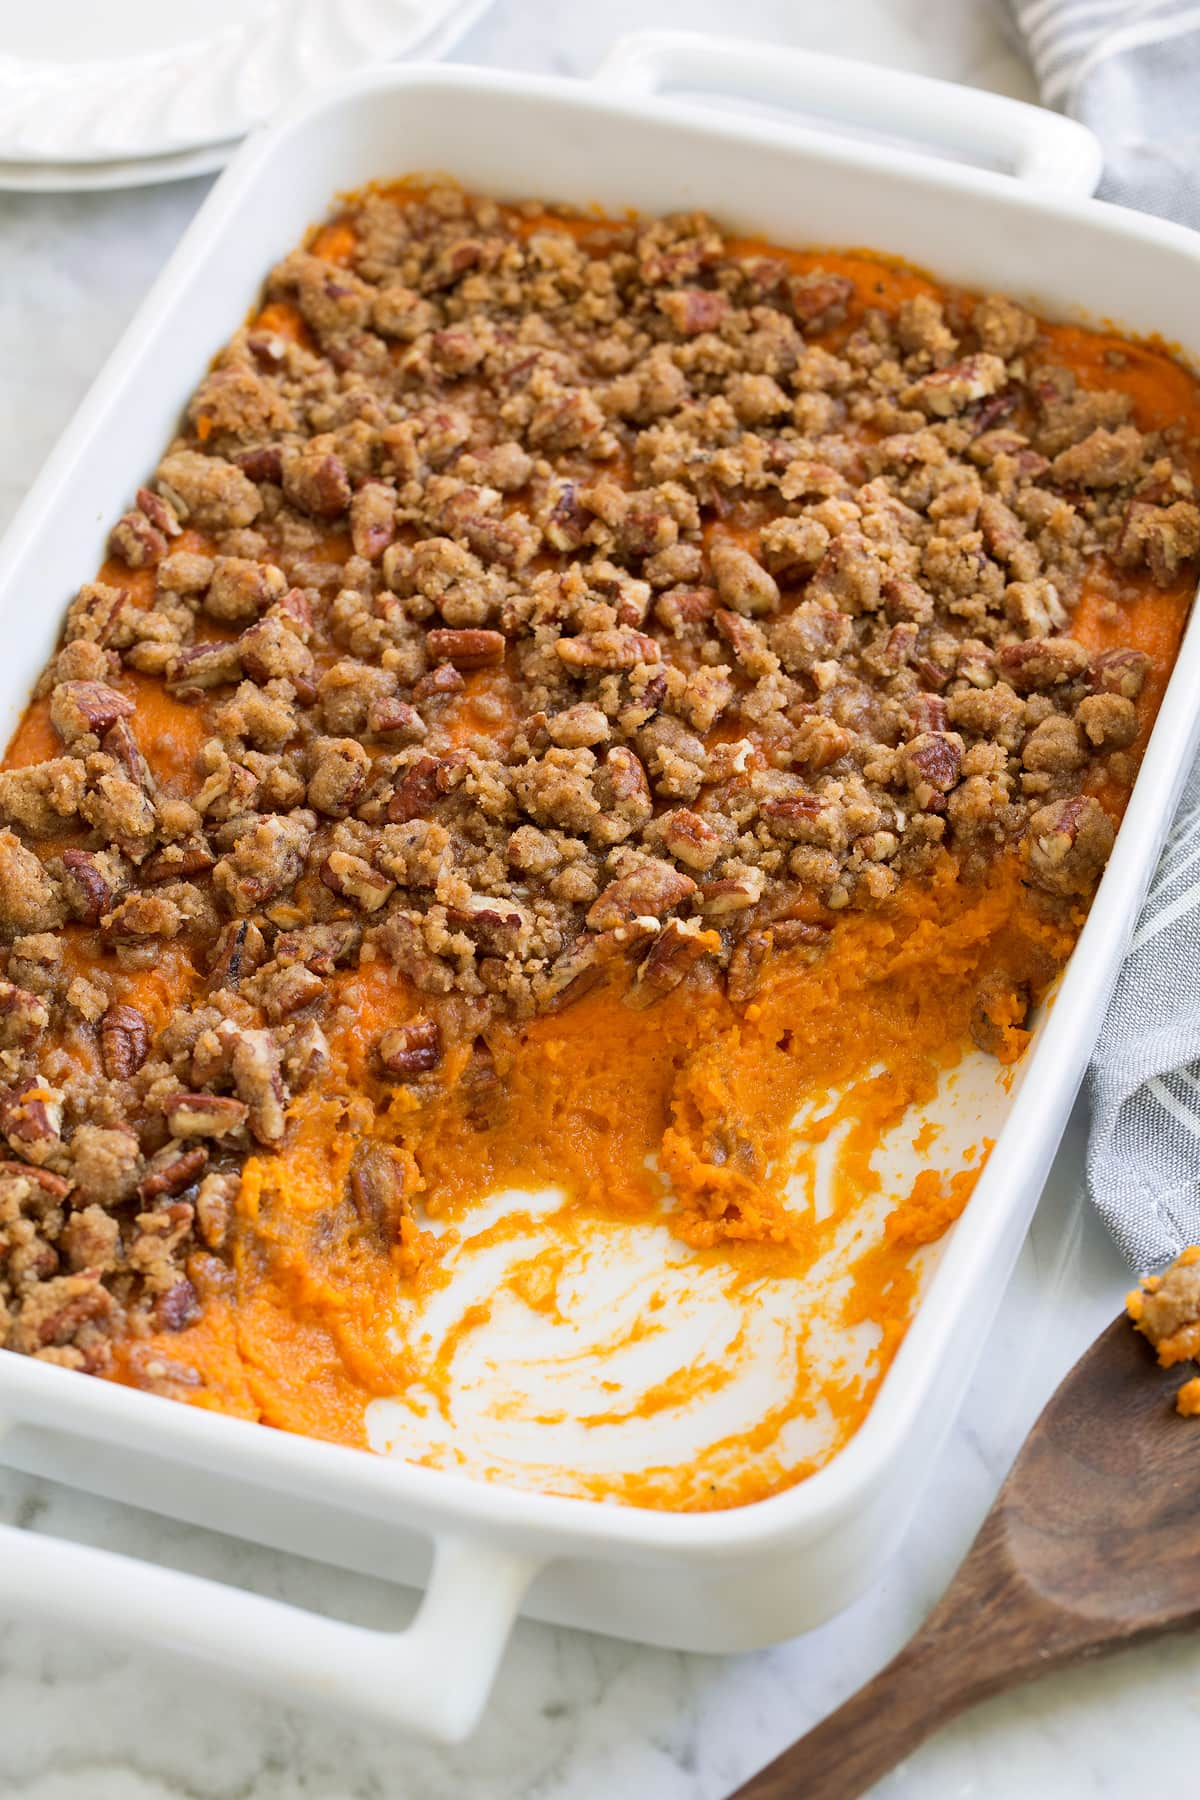 Sweet Potato Casserole with a cinnamon pecan crumble on top, served in a white casserole dish.